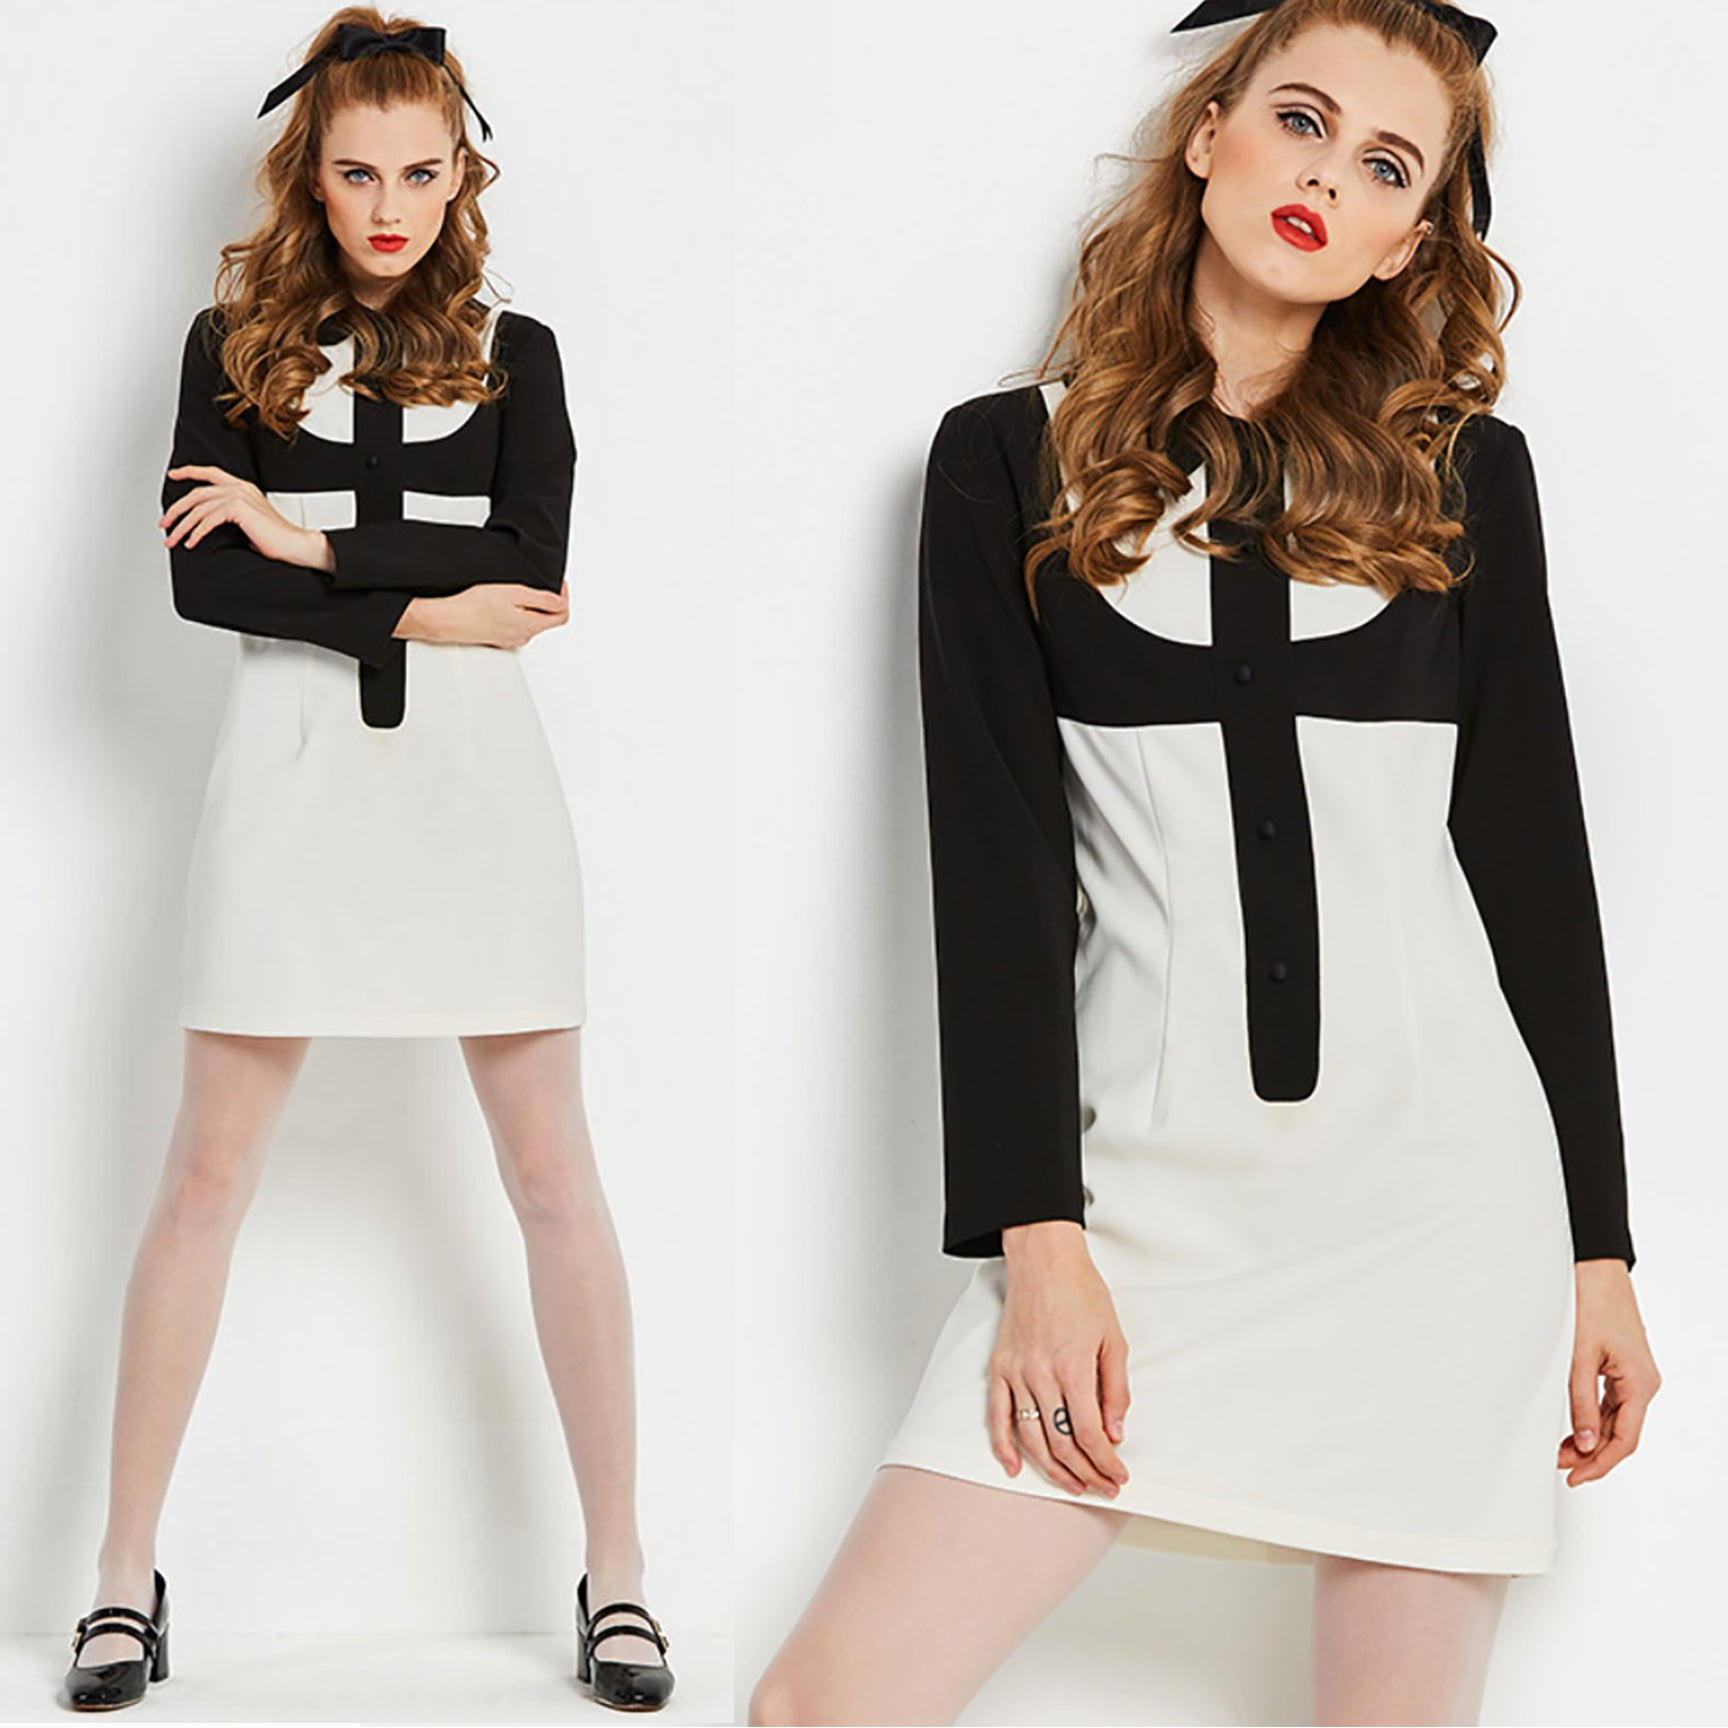 Mod Black and White Op Art Go Go Mini Dress